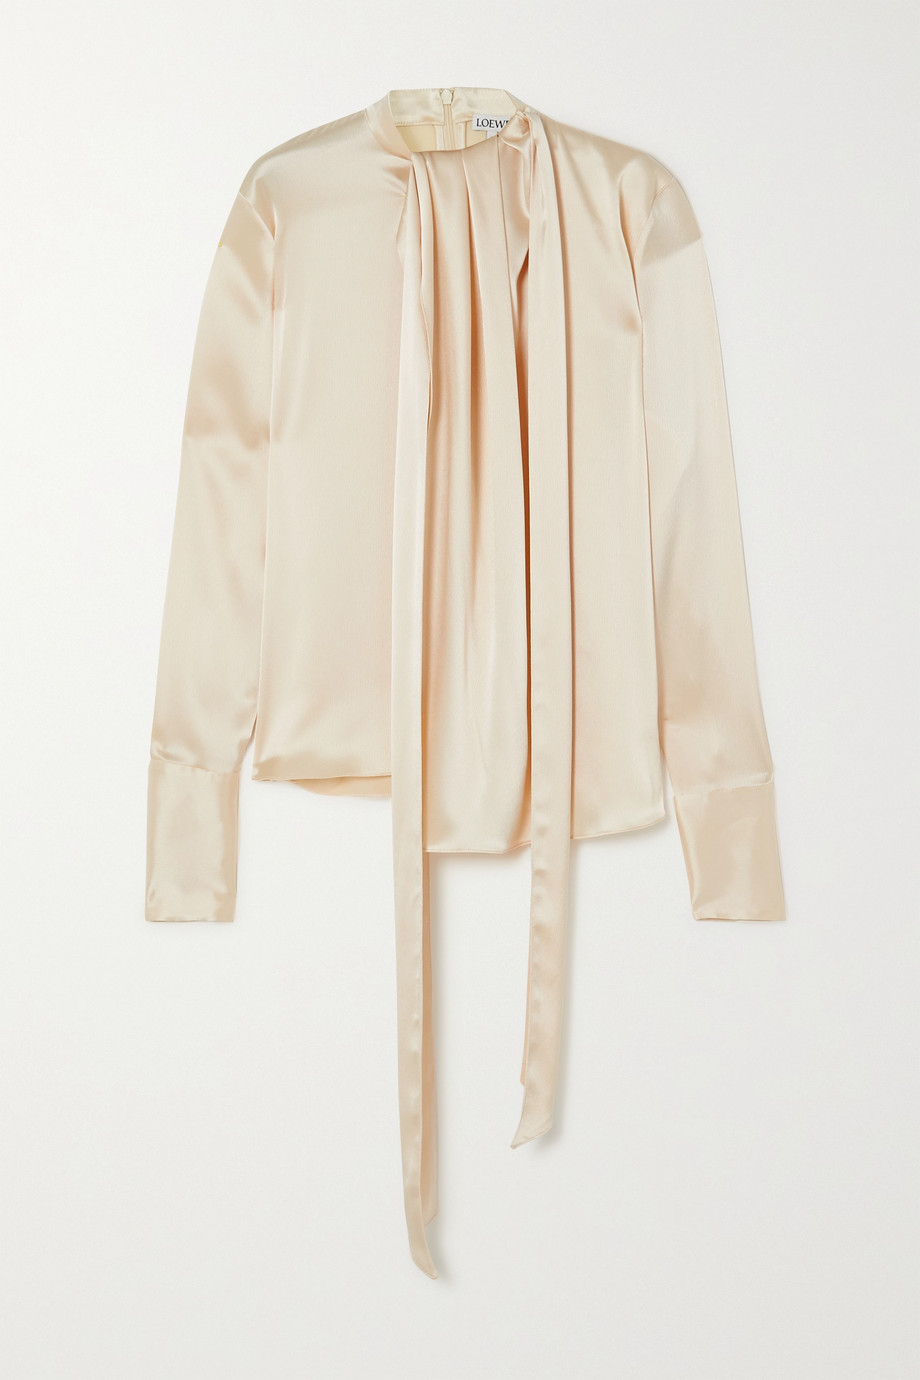 Loewe Lavalliere tie-detailed hammered-satin blouse